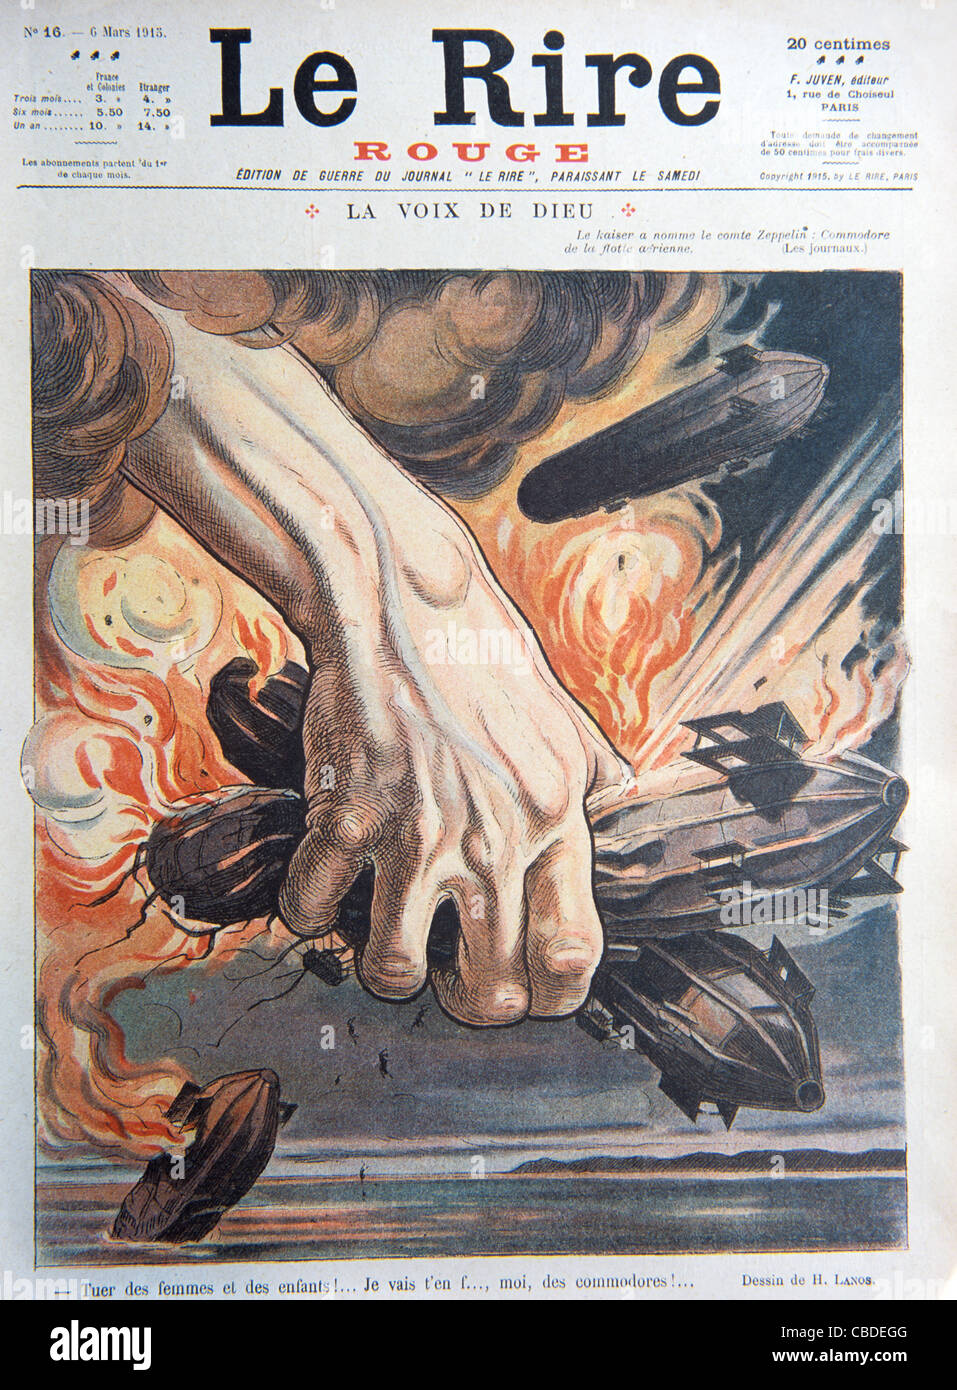 German Zeppelin Bombers Used in Air Raids in First World War. Cover of War Ed of French Satirical Magazine 'Le Rire', Stock Photo